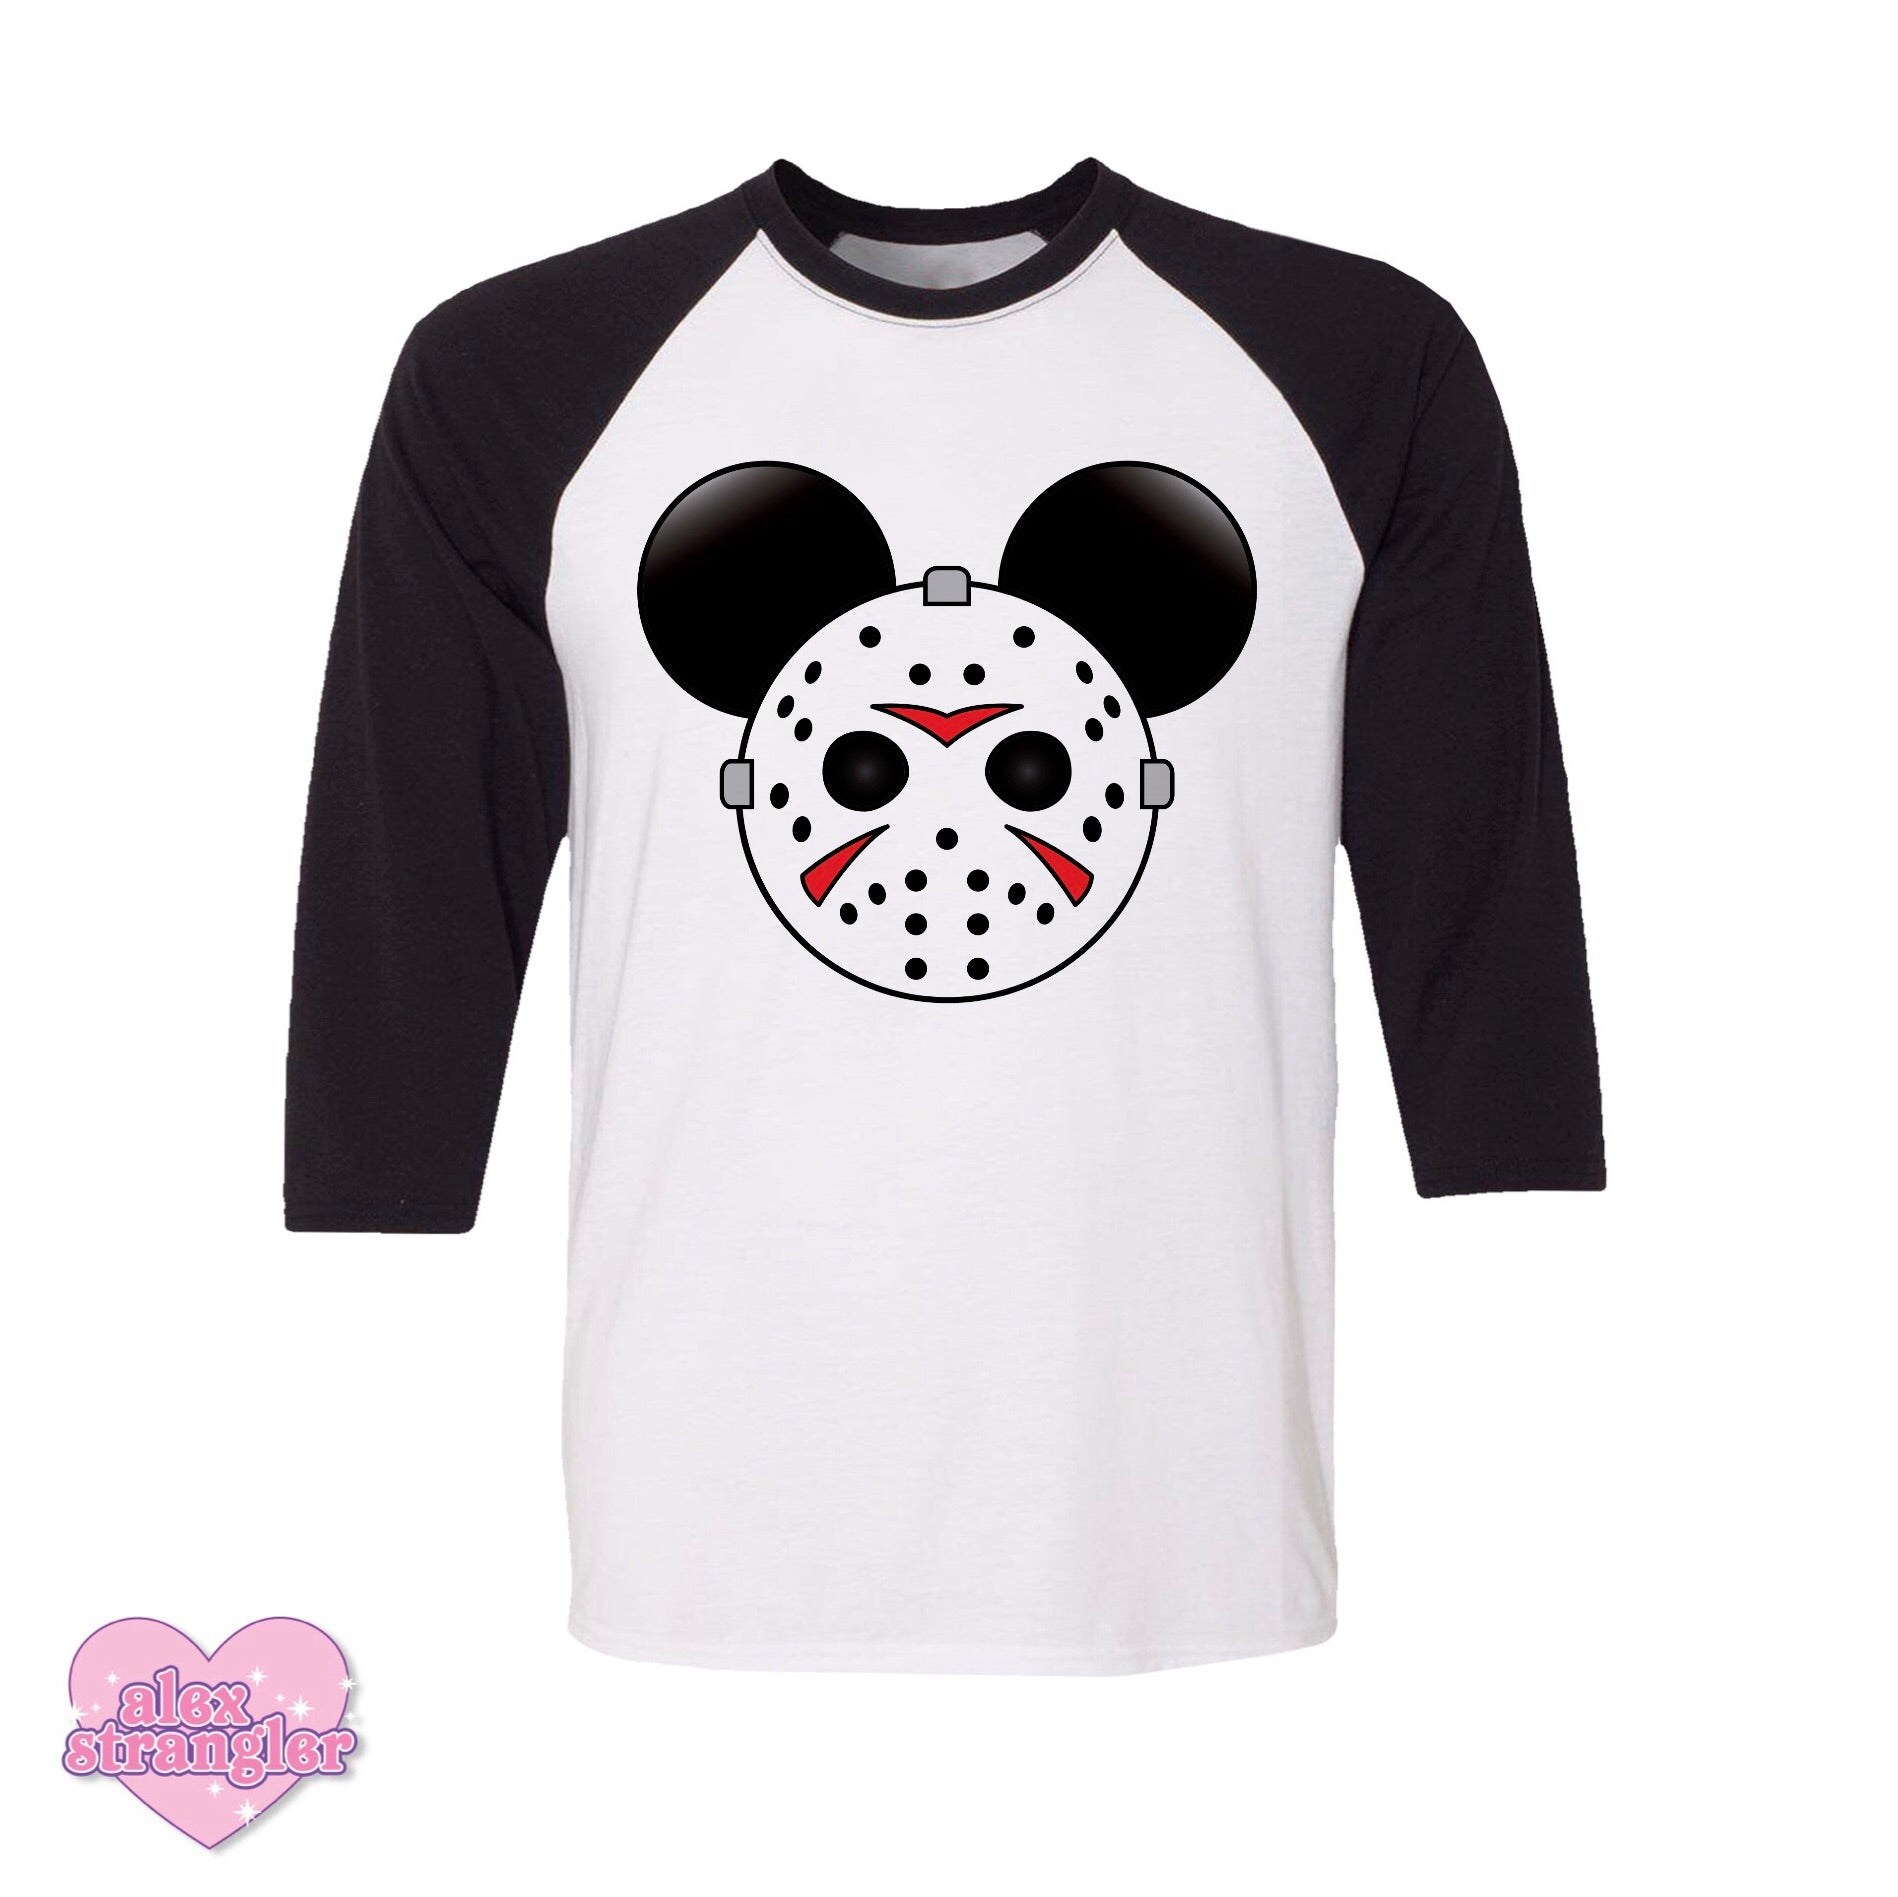 Mr. Murder Mouse - Men's/Unisex Raglan